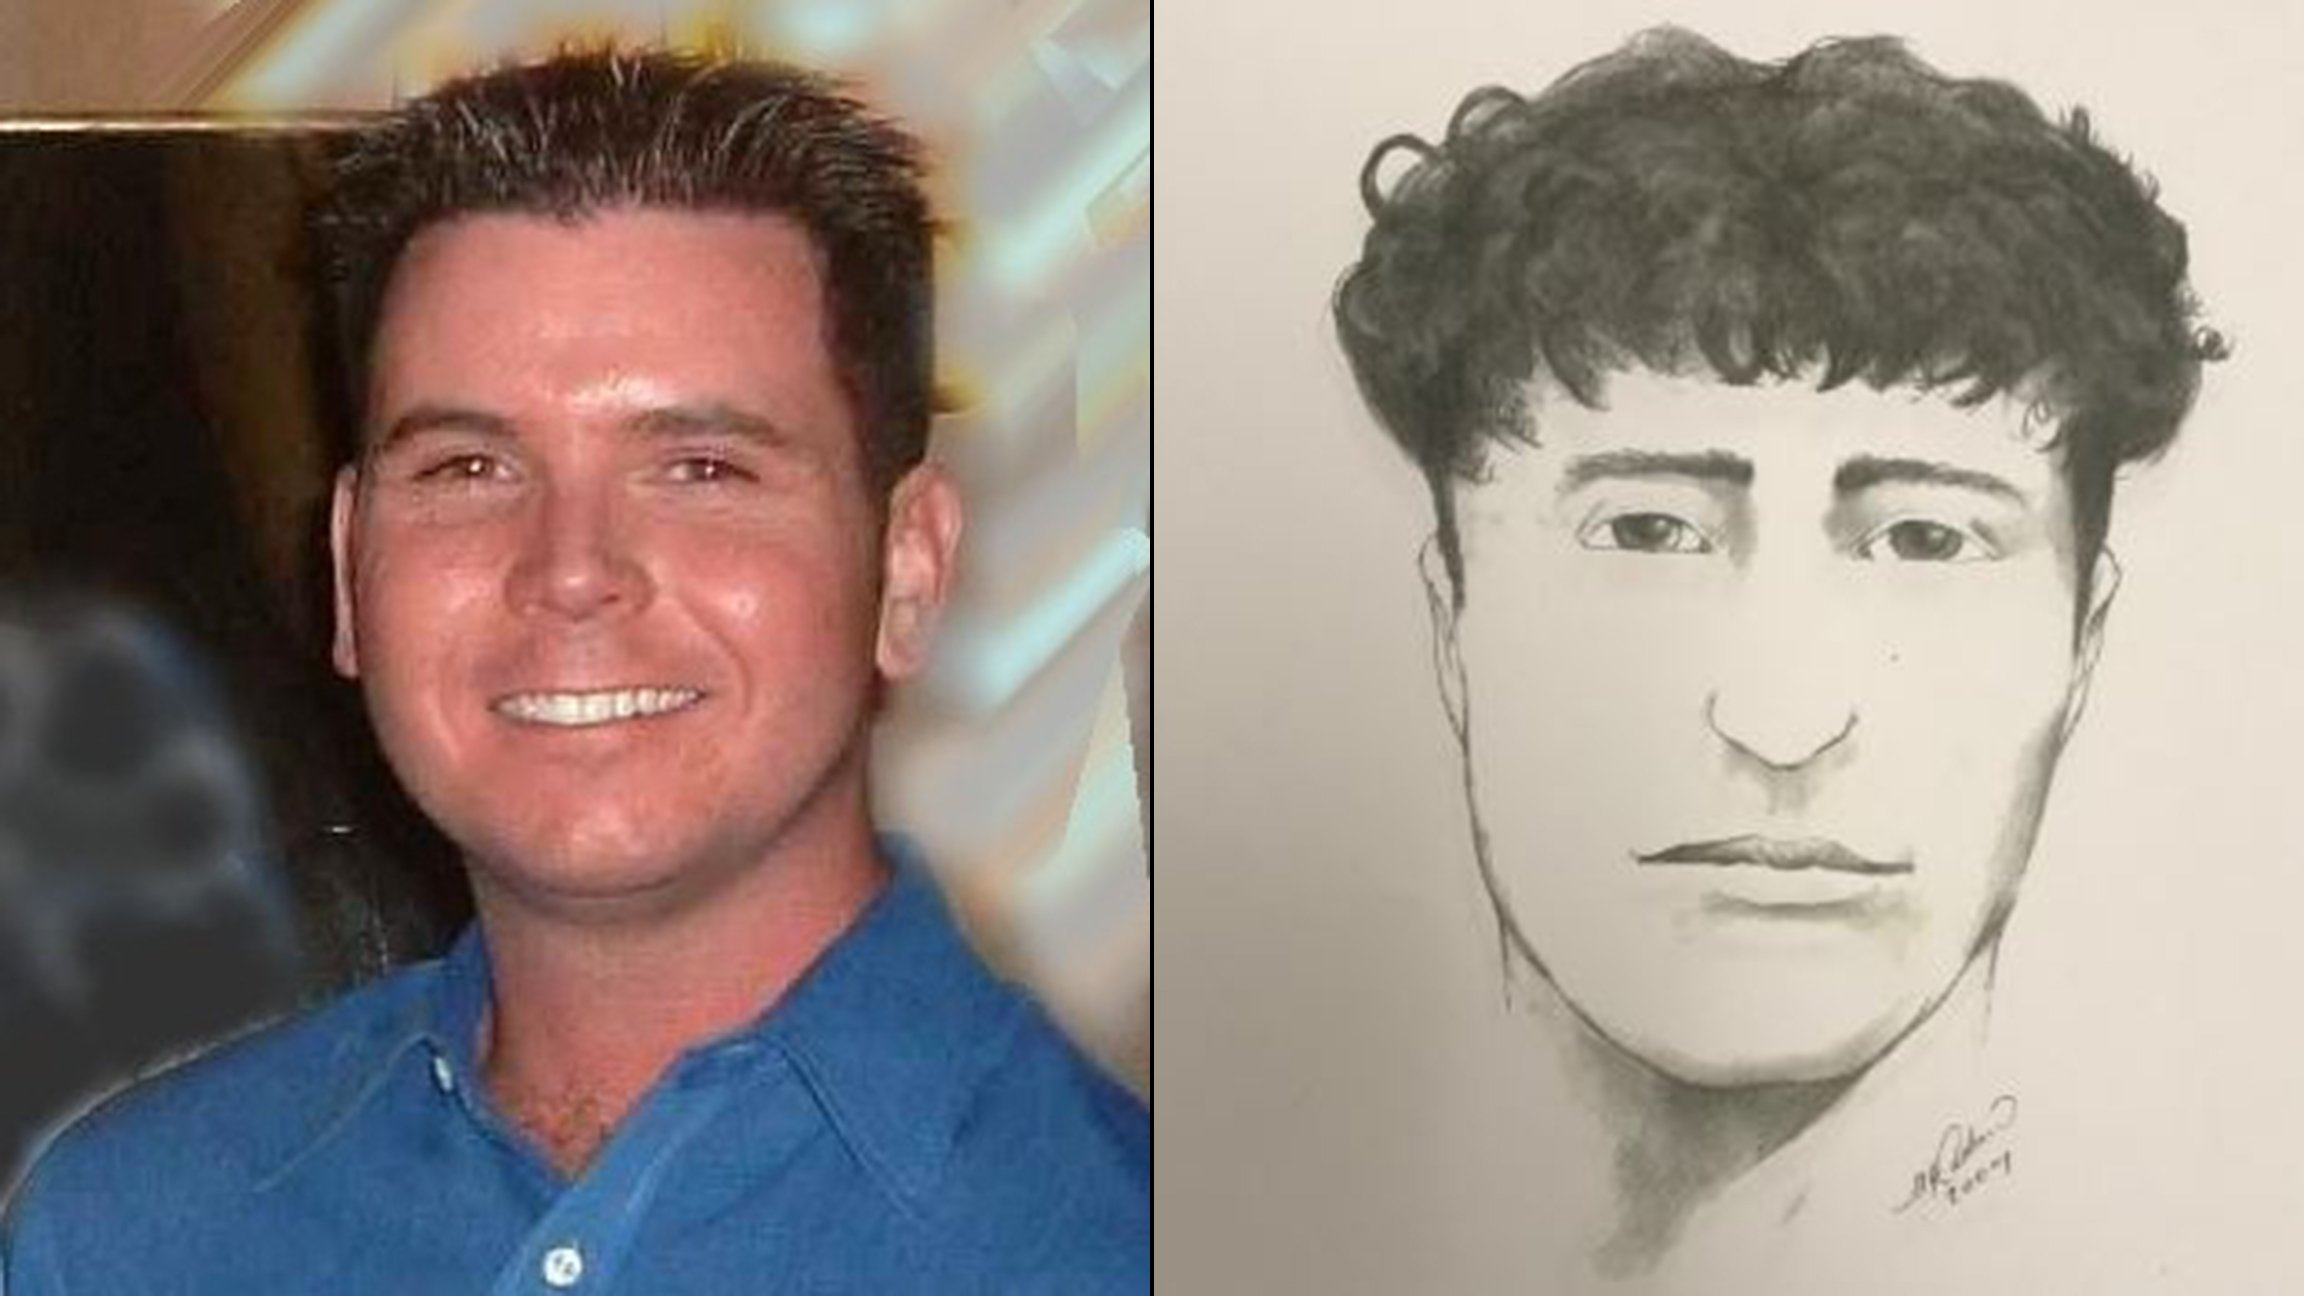 Kevin Clewer, left, was killed in 2004. Chicago police this week reissued a sketch of a person of interest in the case. (Photos courtesy Ron Clewer, Chicago Police Department)